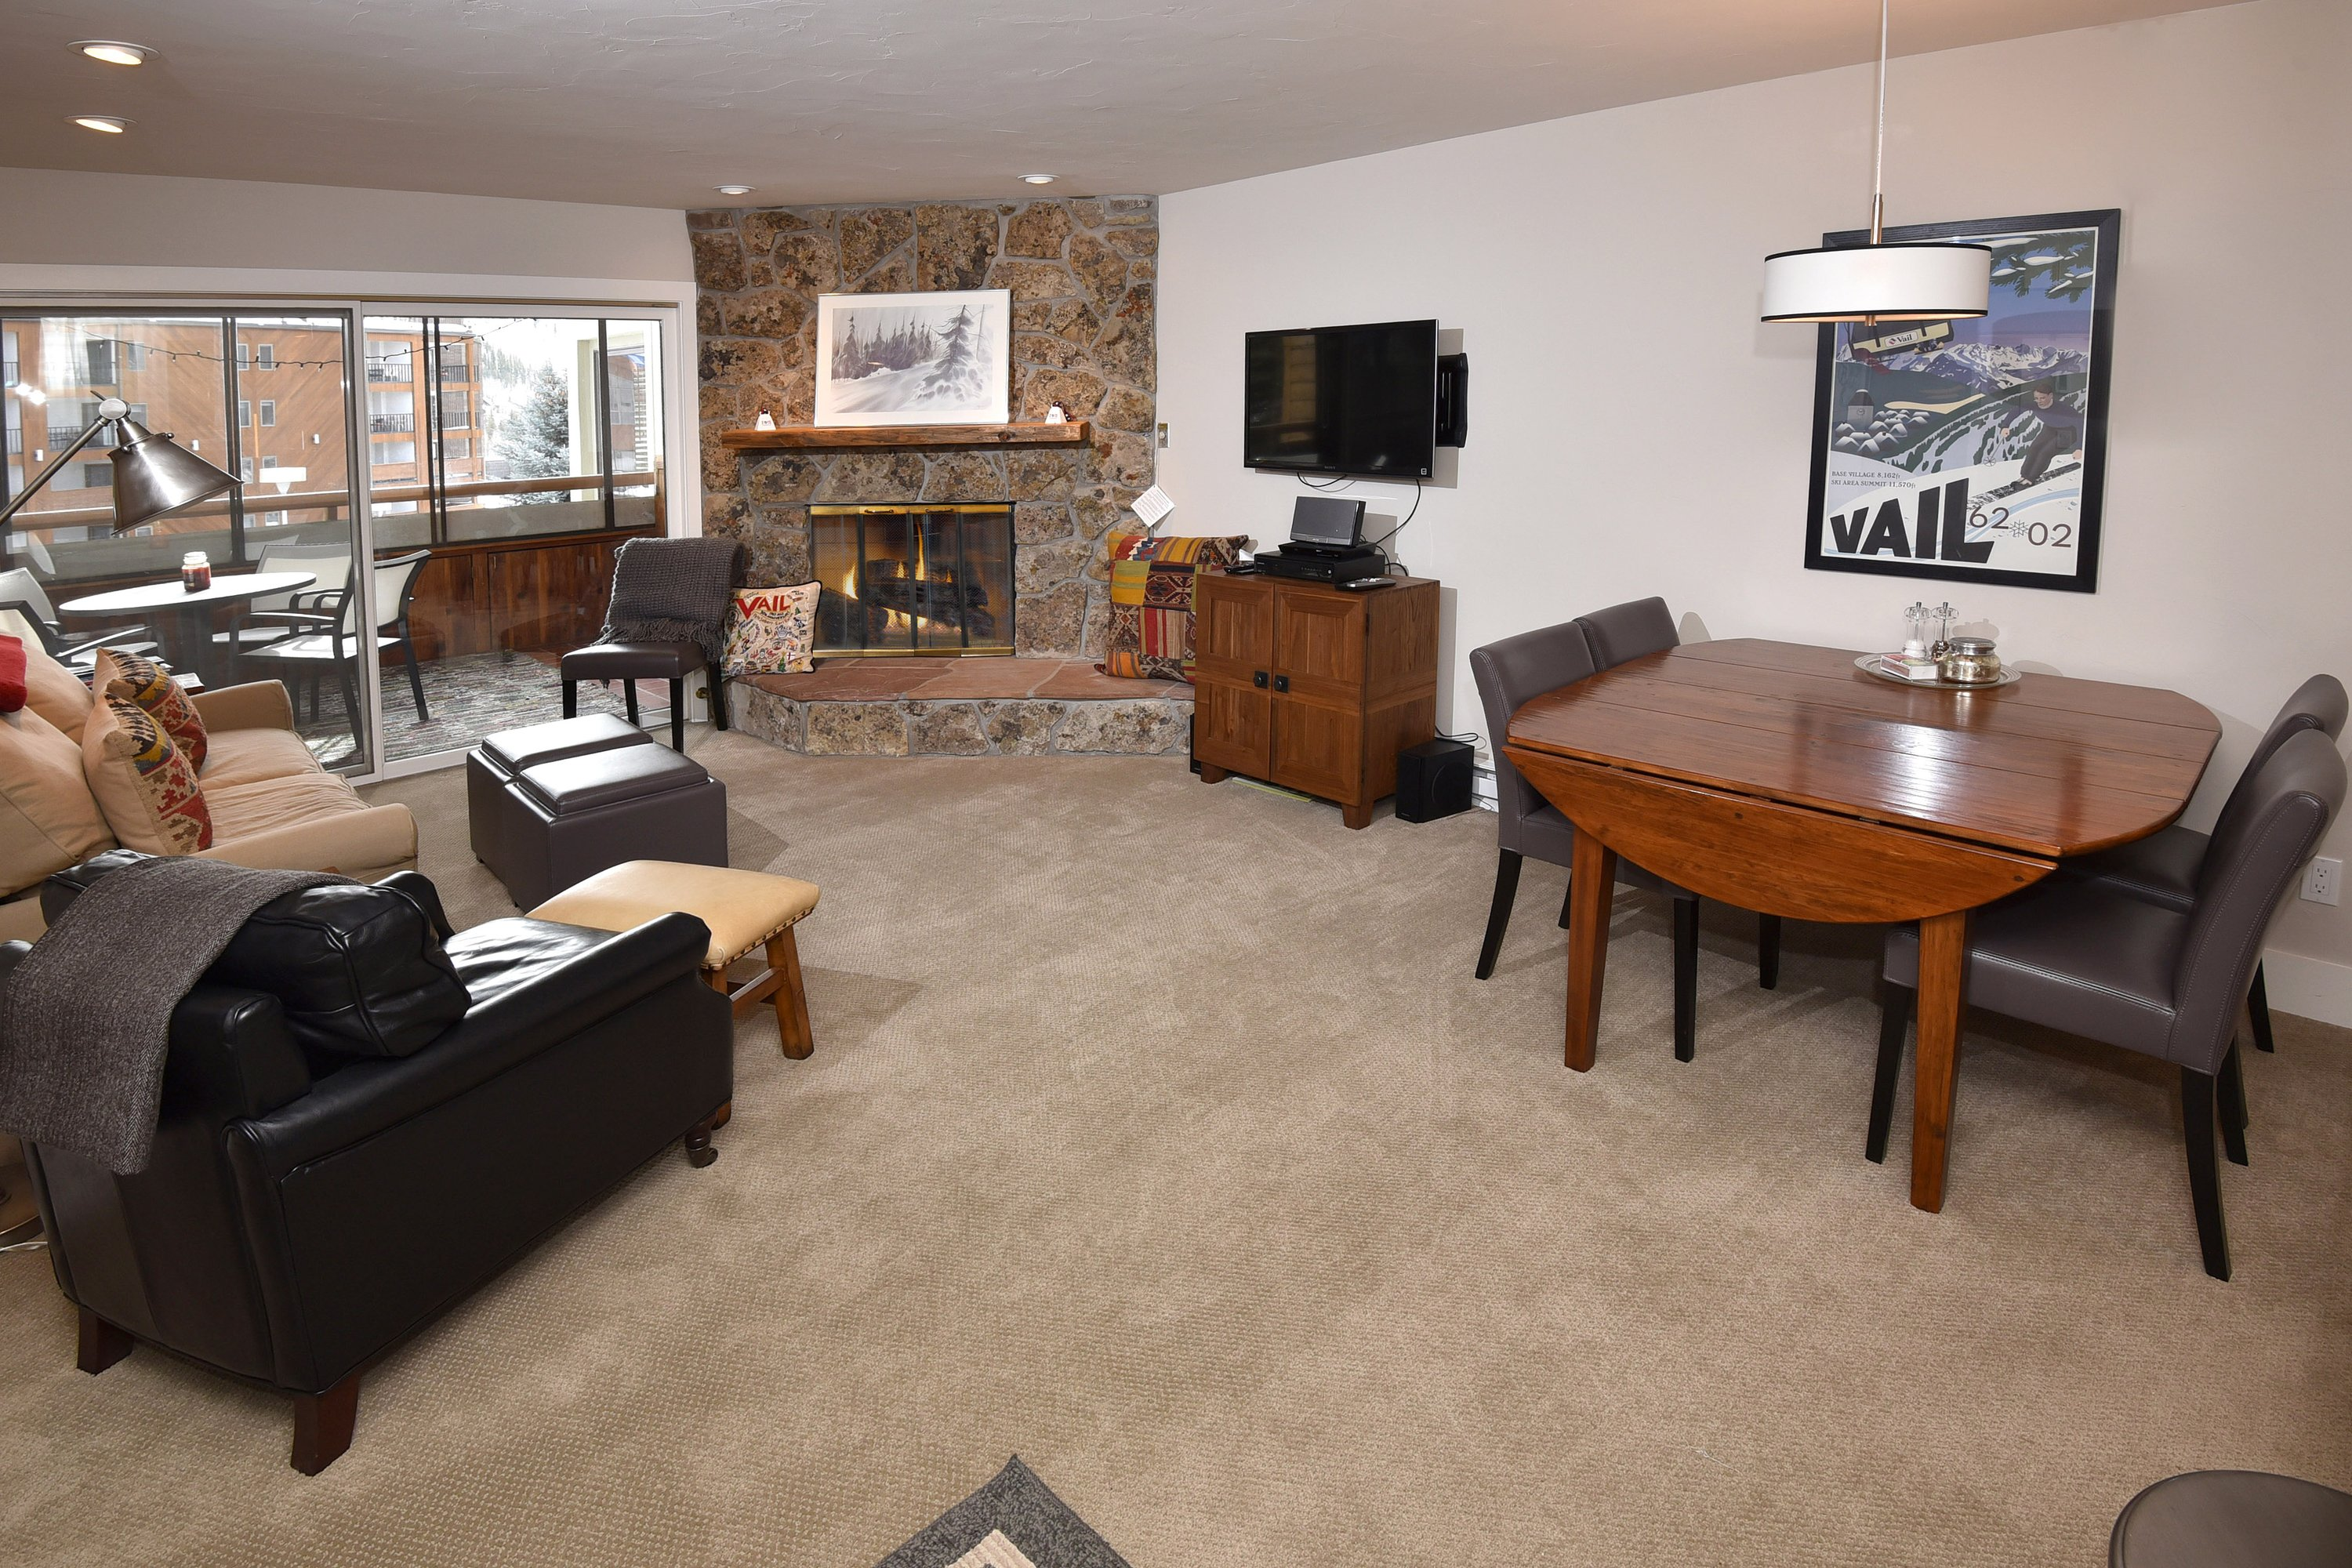 2 Bed 2 Bath Newly Remodeled Snowfox On The Free Shuttle Bus To Vail